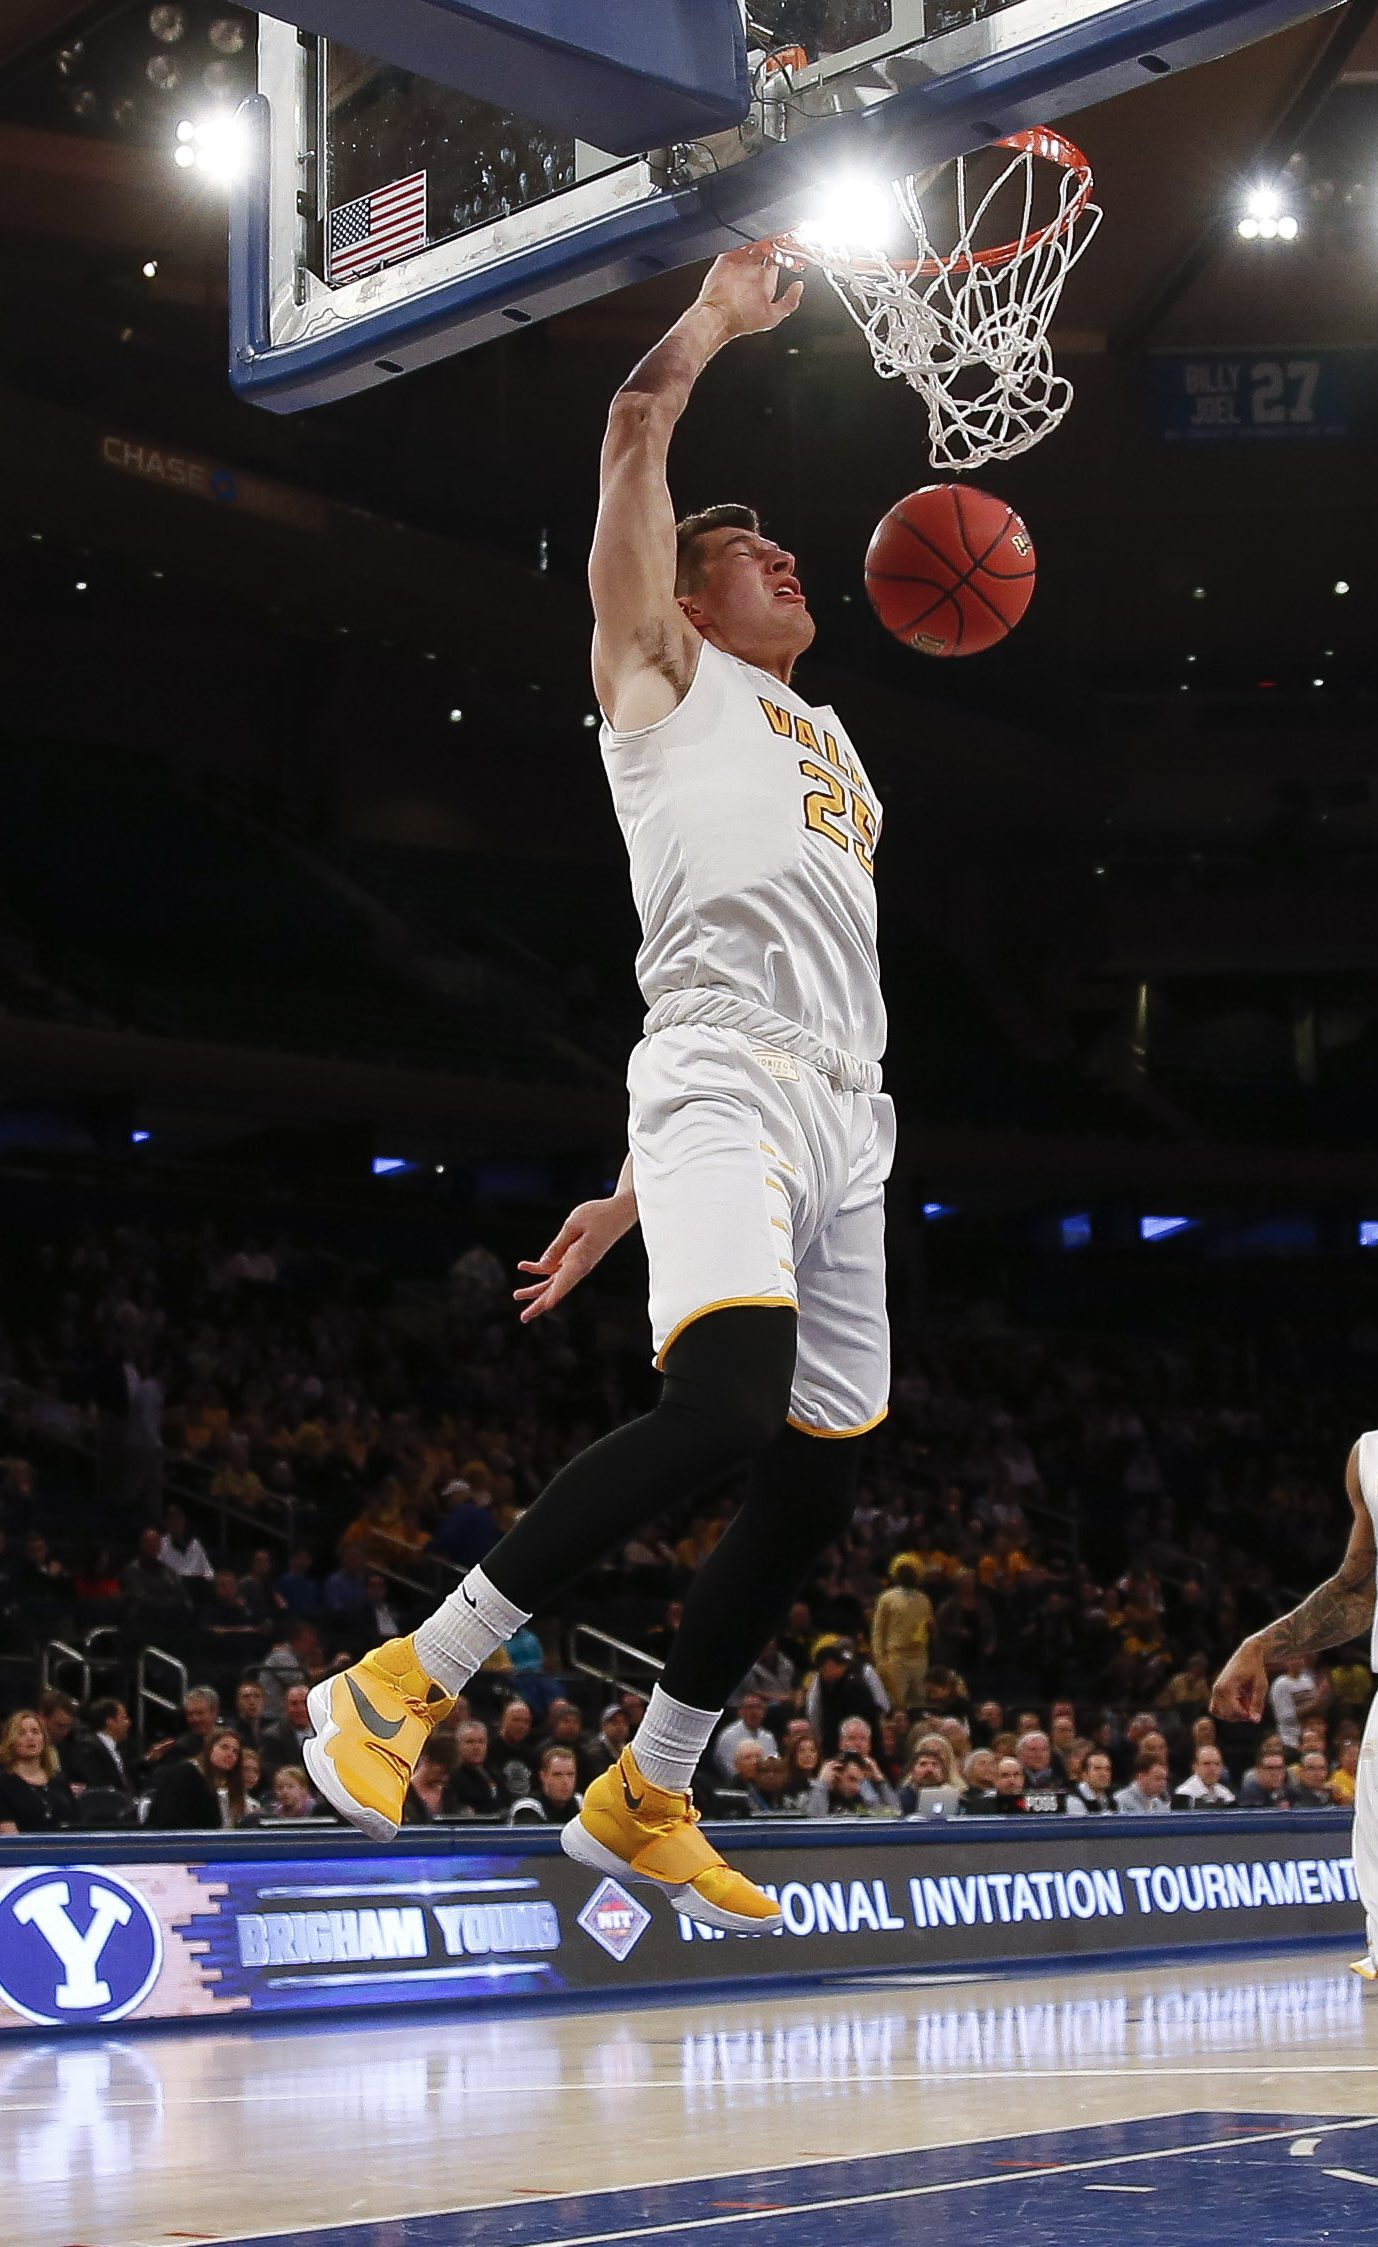 NEW YORK, NY - MARCH 29: Alec Peters #25 of the Valparaiso Crusaders dunks against the Brigham Young Cougars during their NIT Championship Semifinal game at Madison Square Garden on March 29, 2016 in New York City. (Photo by Jeff Zelevansky/Getty Images)